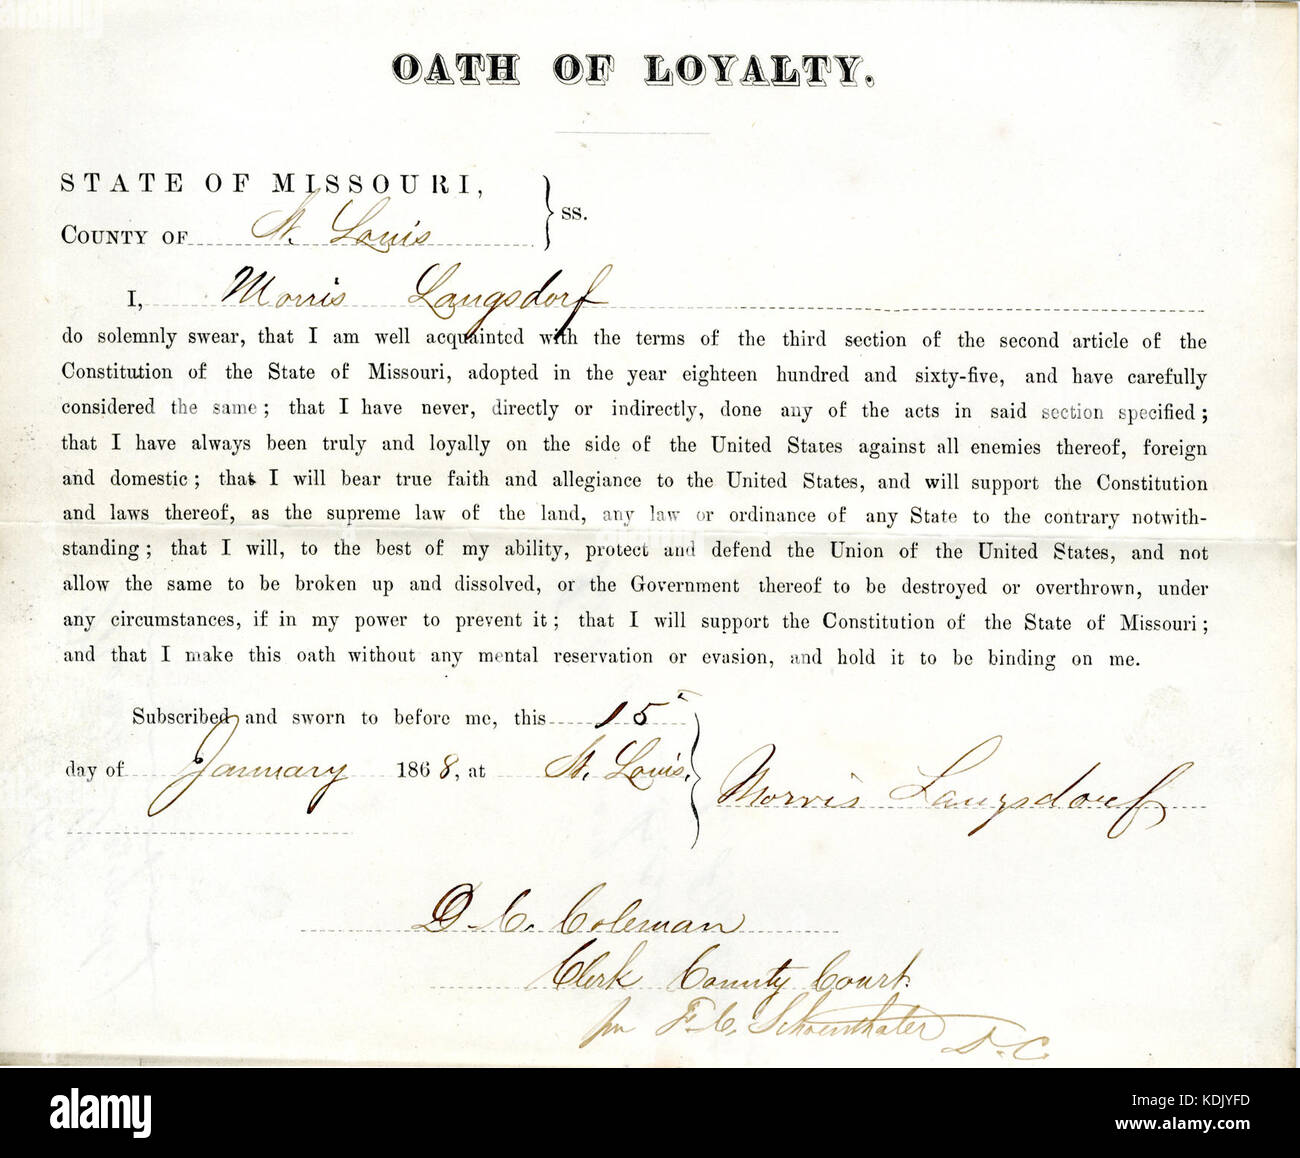 Loyalty oath of Morris Langsdorf of Missouri, County of St. Louis - Stock Image